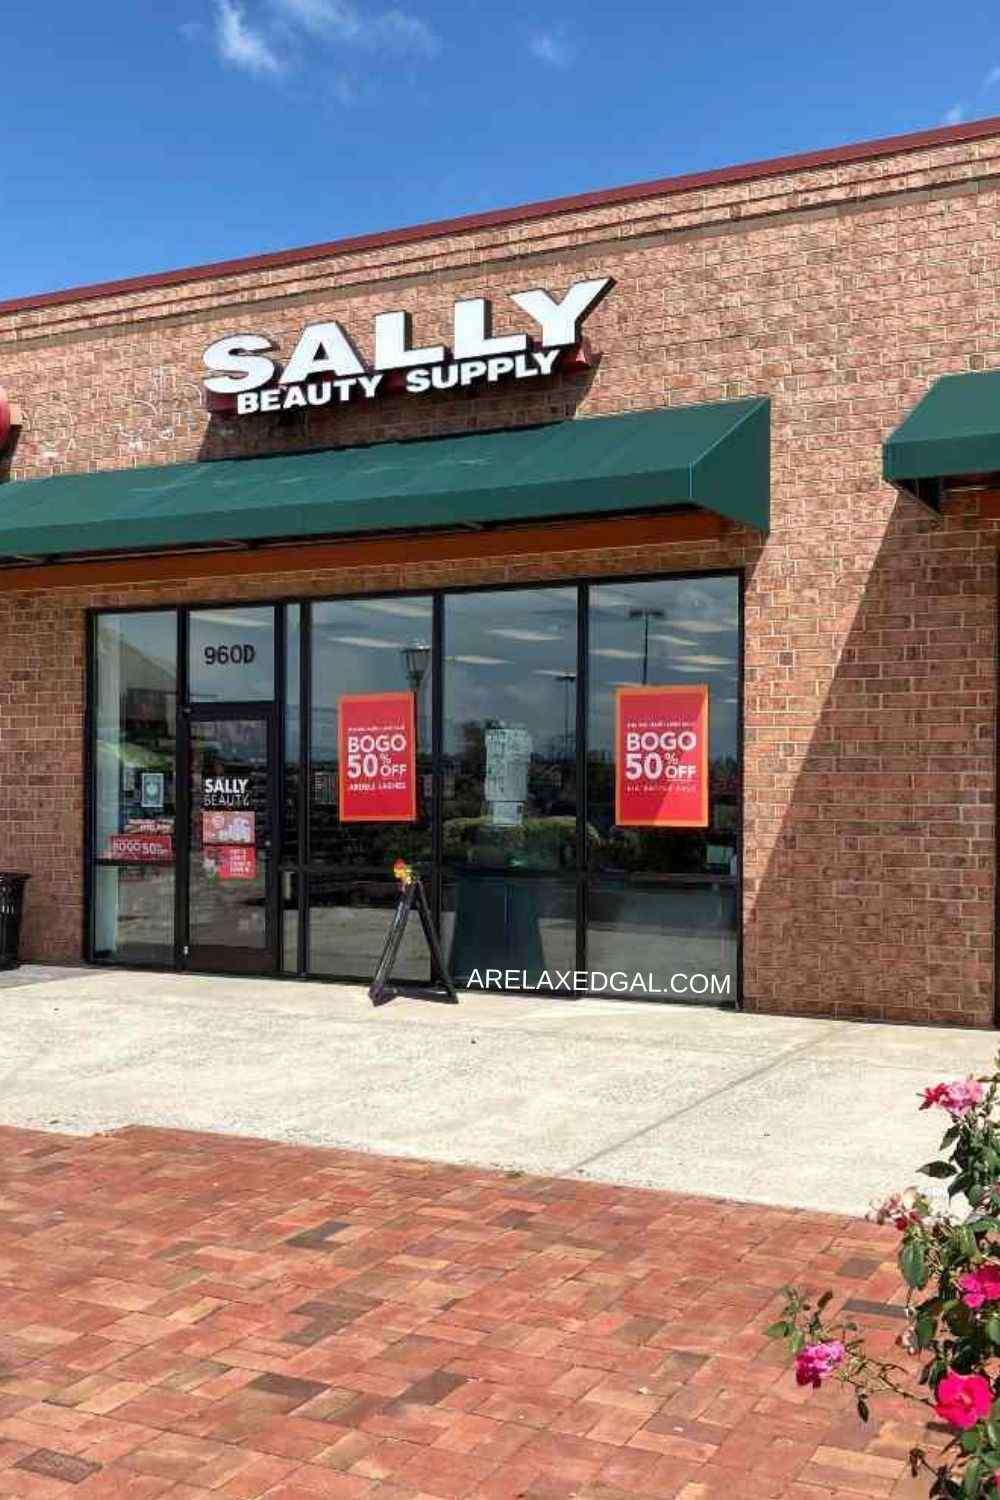 What To Buy During A Sally Beauty Hair Care Sale | A Relaxed Gal